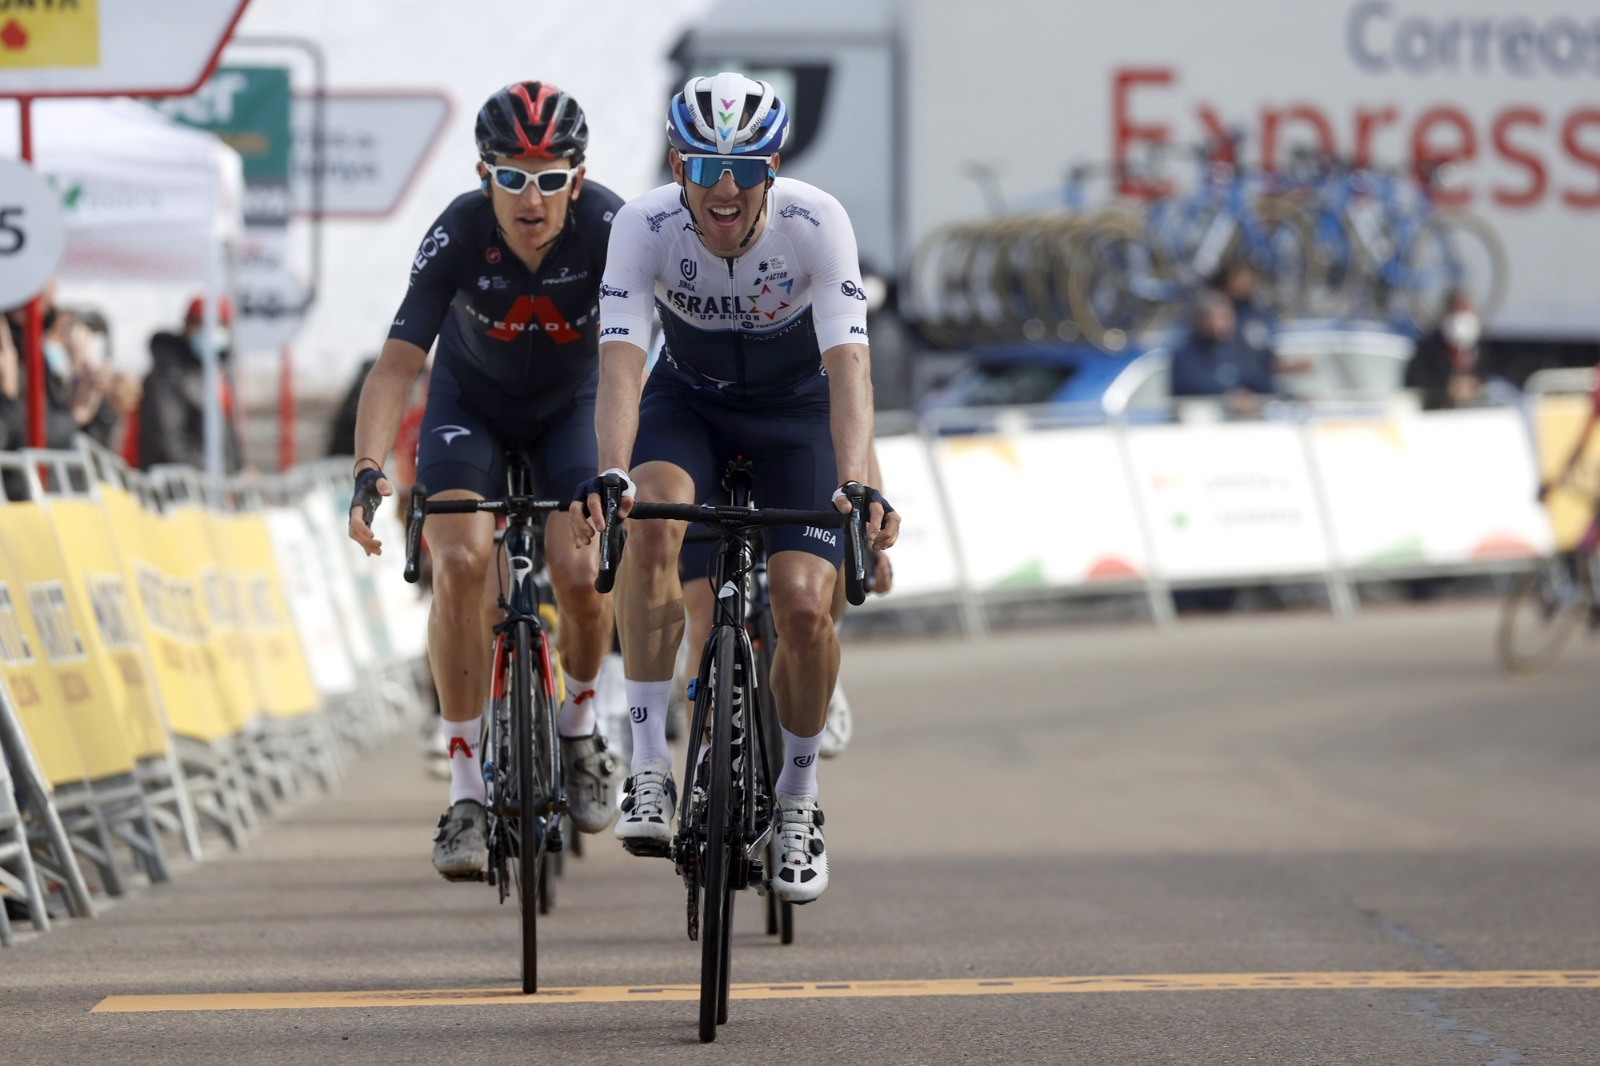 Woods impresses with furious uphill sprint to second place in stage 4 Catalunya